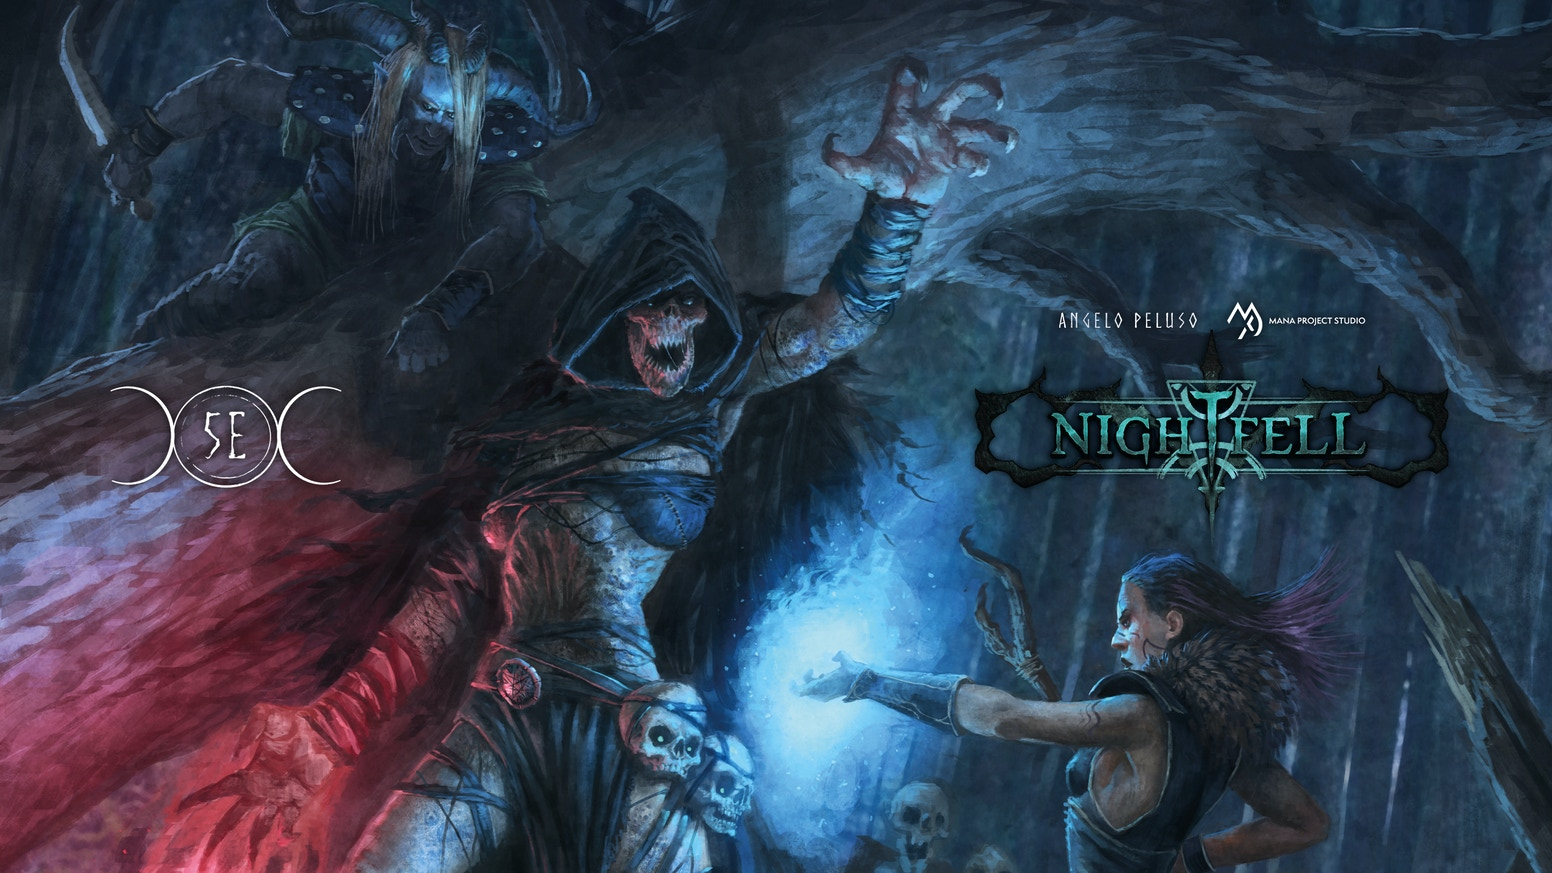 Nightfell is a Horror Fantasy setting, a grimdark world under the influence of the Moon, for 5th Edition, by Angelo Peluso & Mana Project Studio.